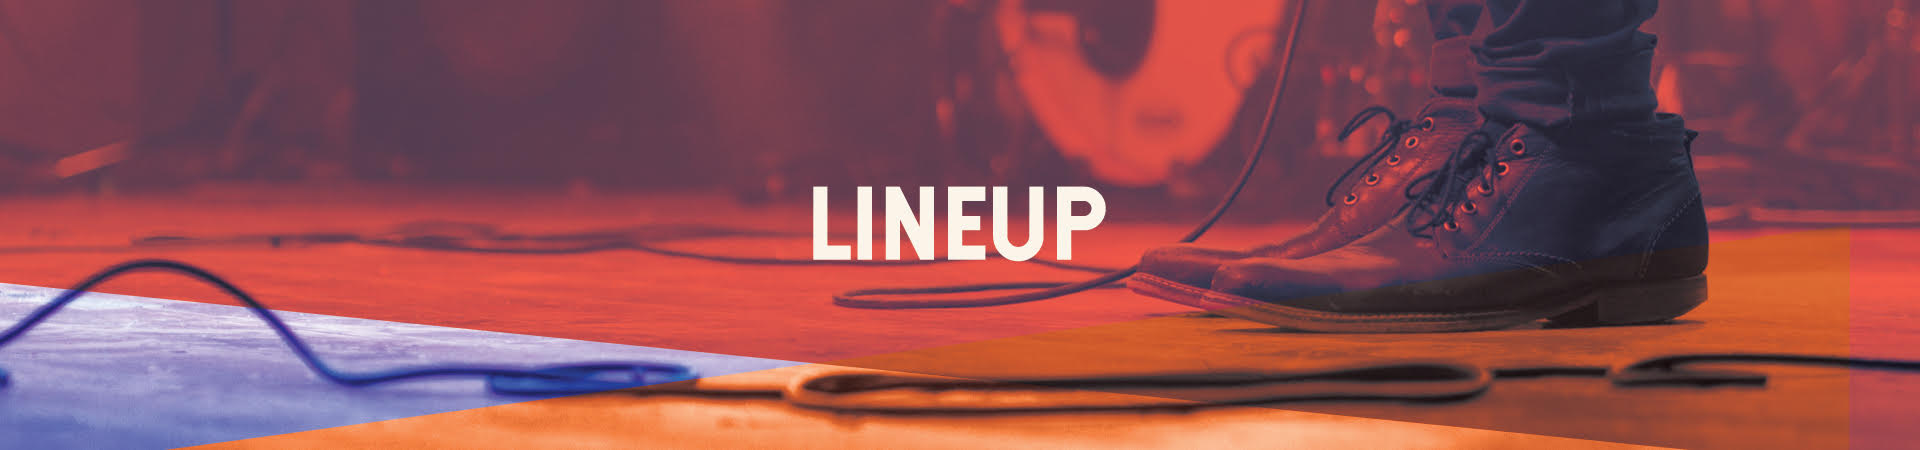 Lineup Web Banner, musician's boots with guitar cable and drumset